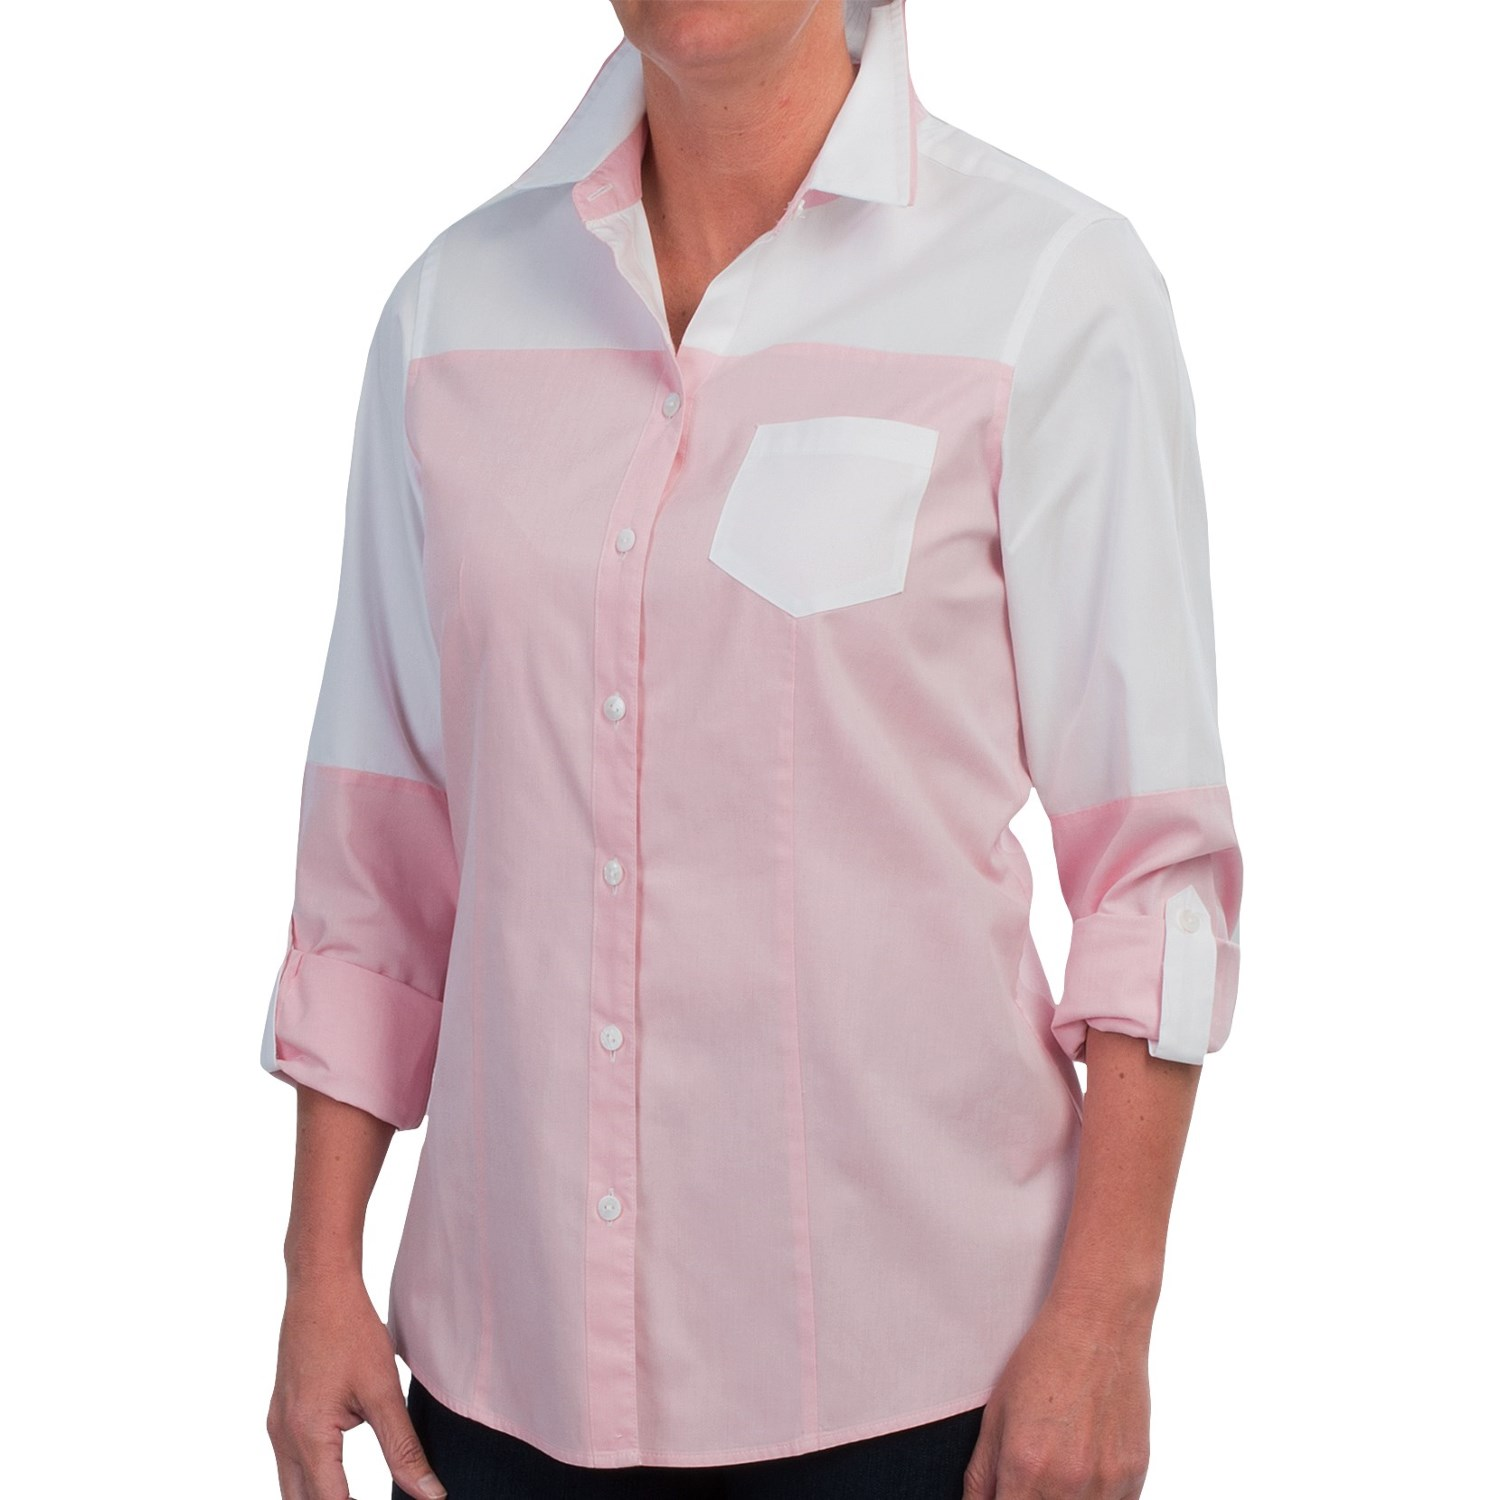 Foxcroft fitted button down shirt for women save 75 for Womens button down shirts fitted